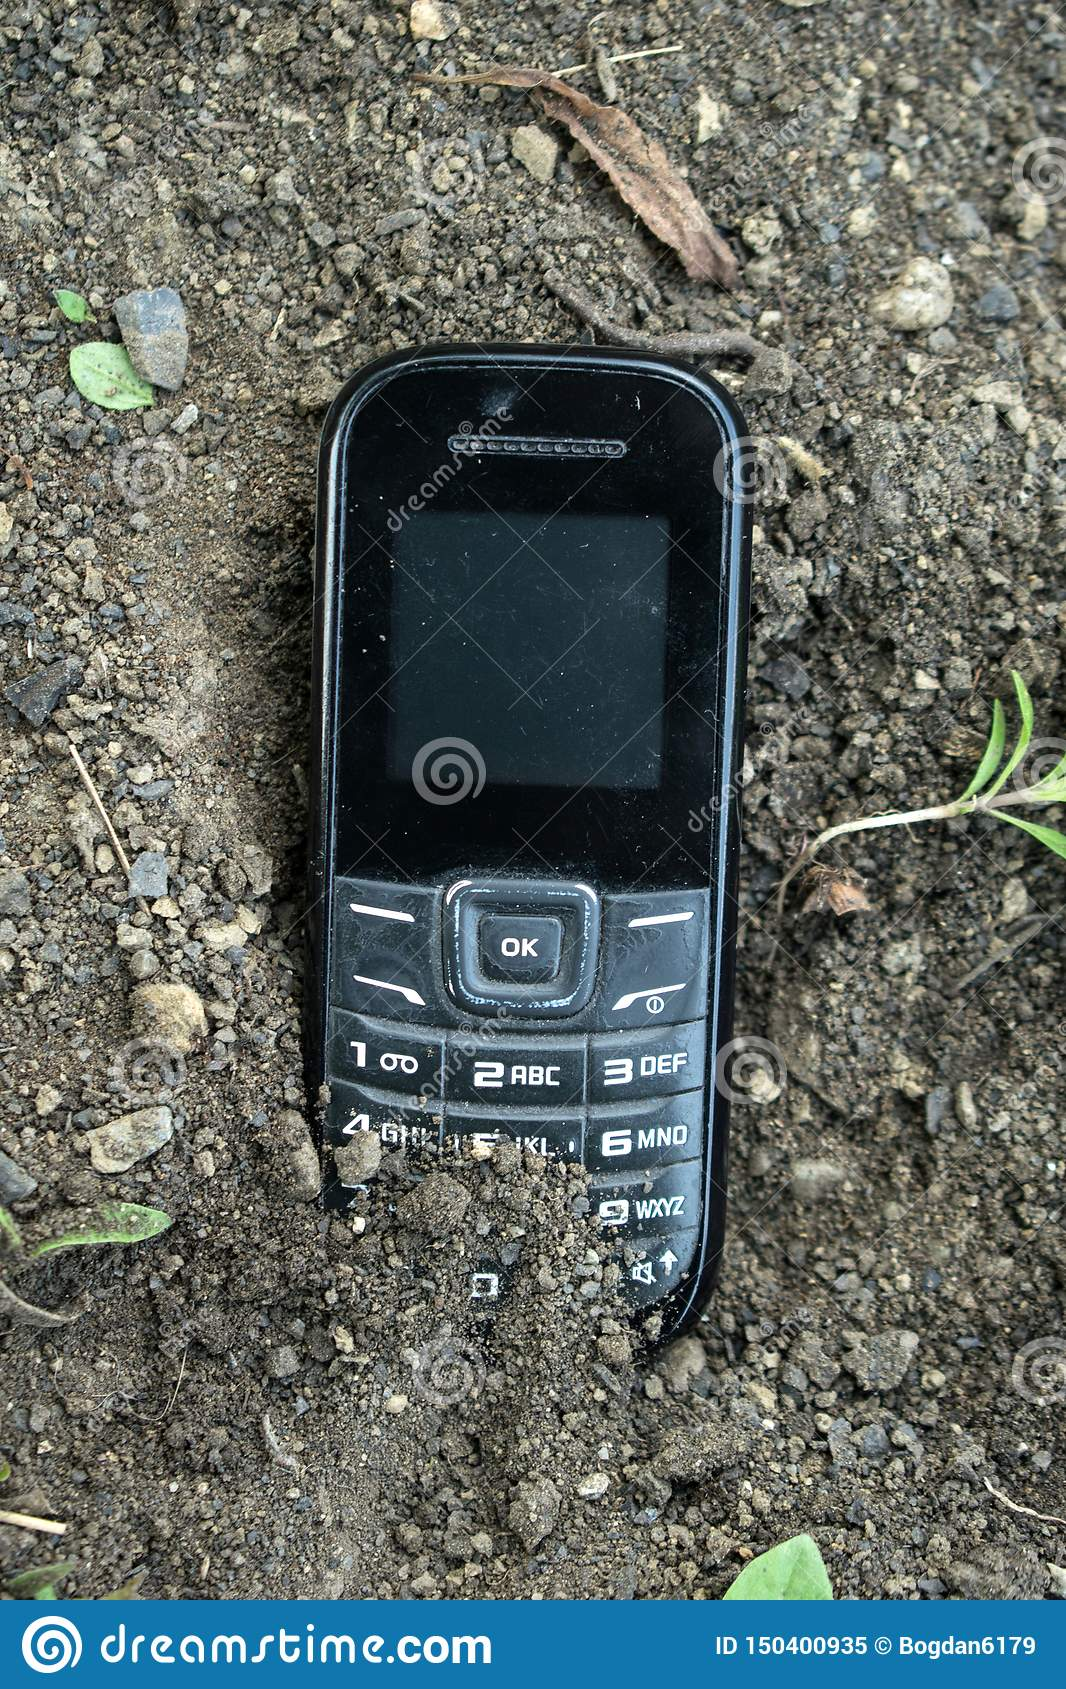 An old phone buried in the ground